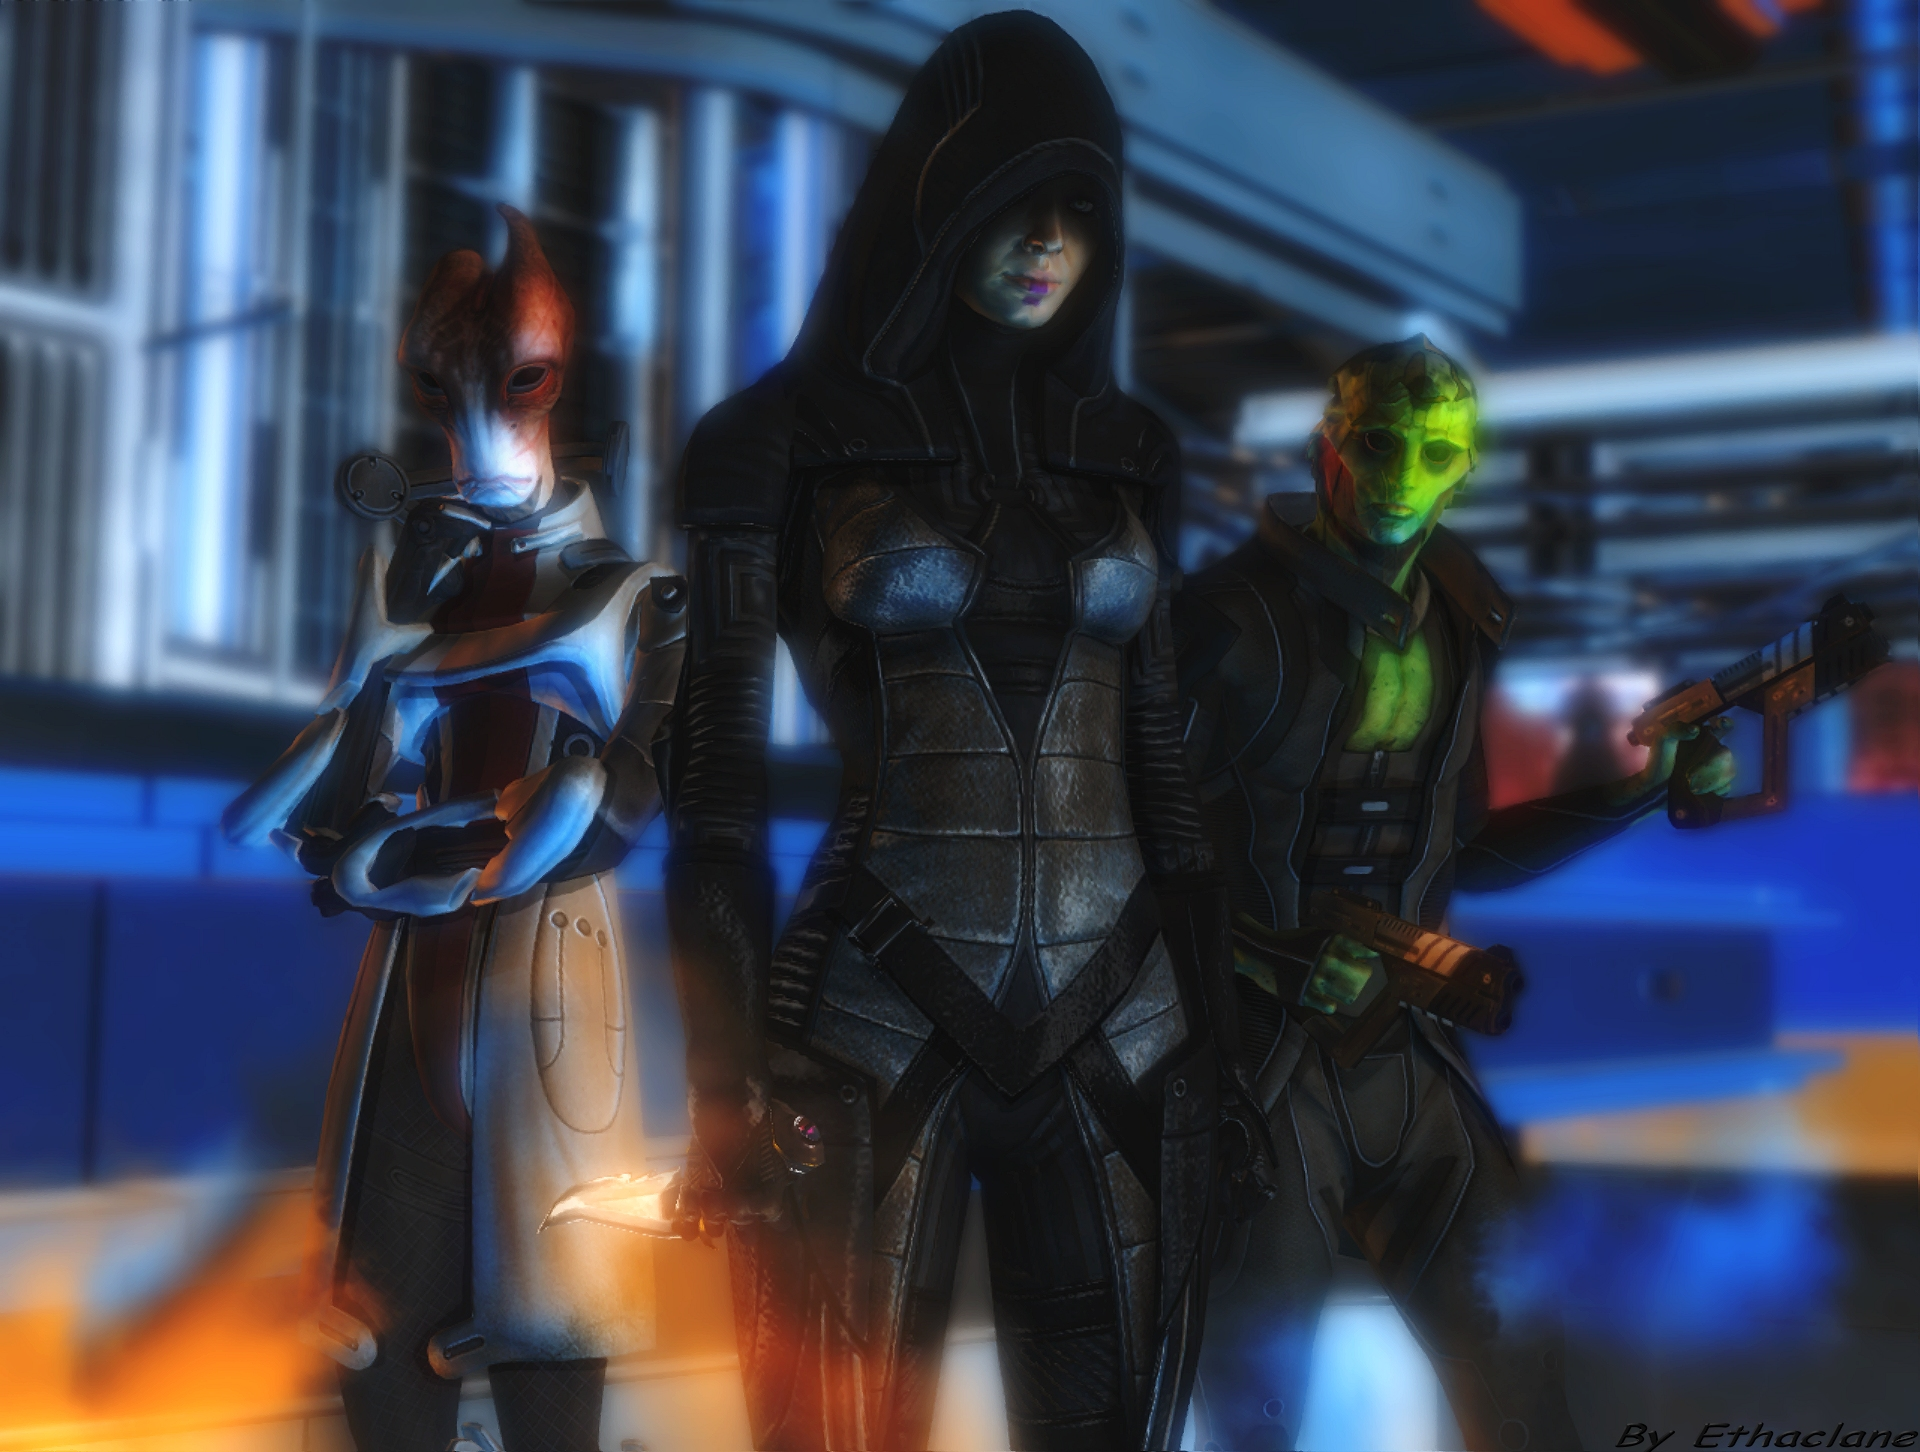 Mass effect wallpaper 10 - Kasumi/Thane/Mordin by ethaclane